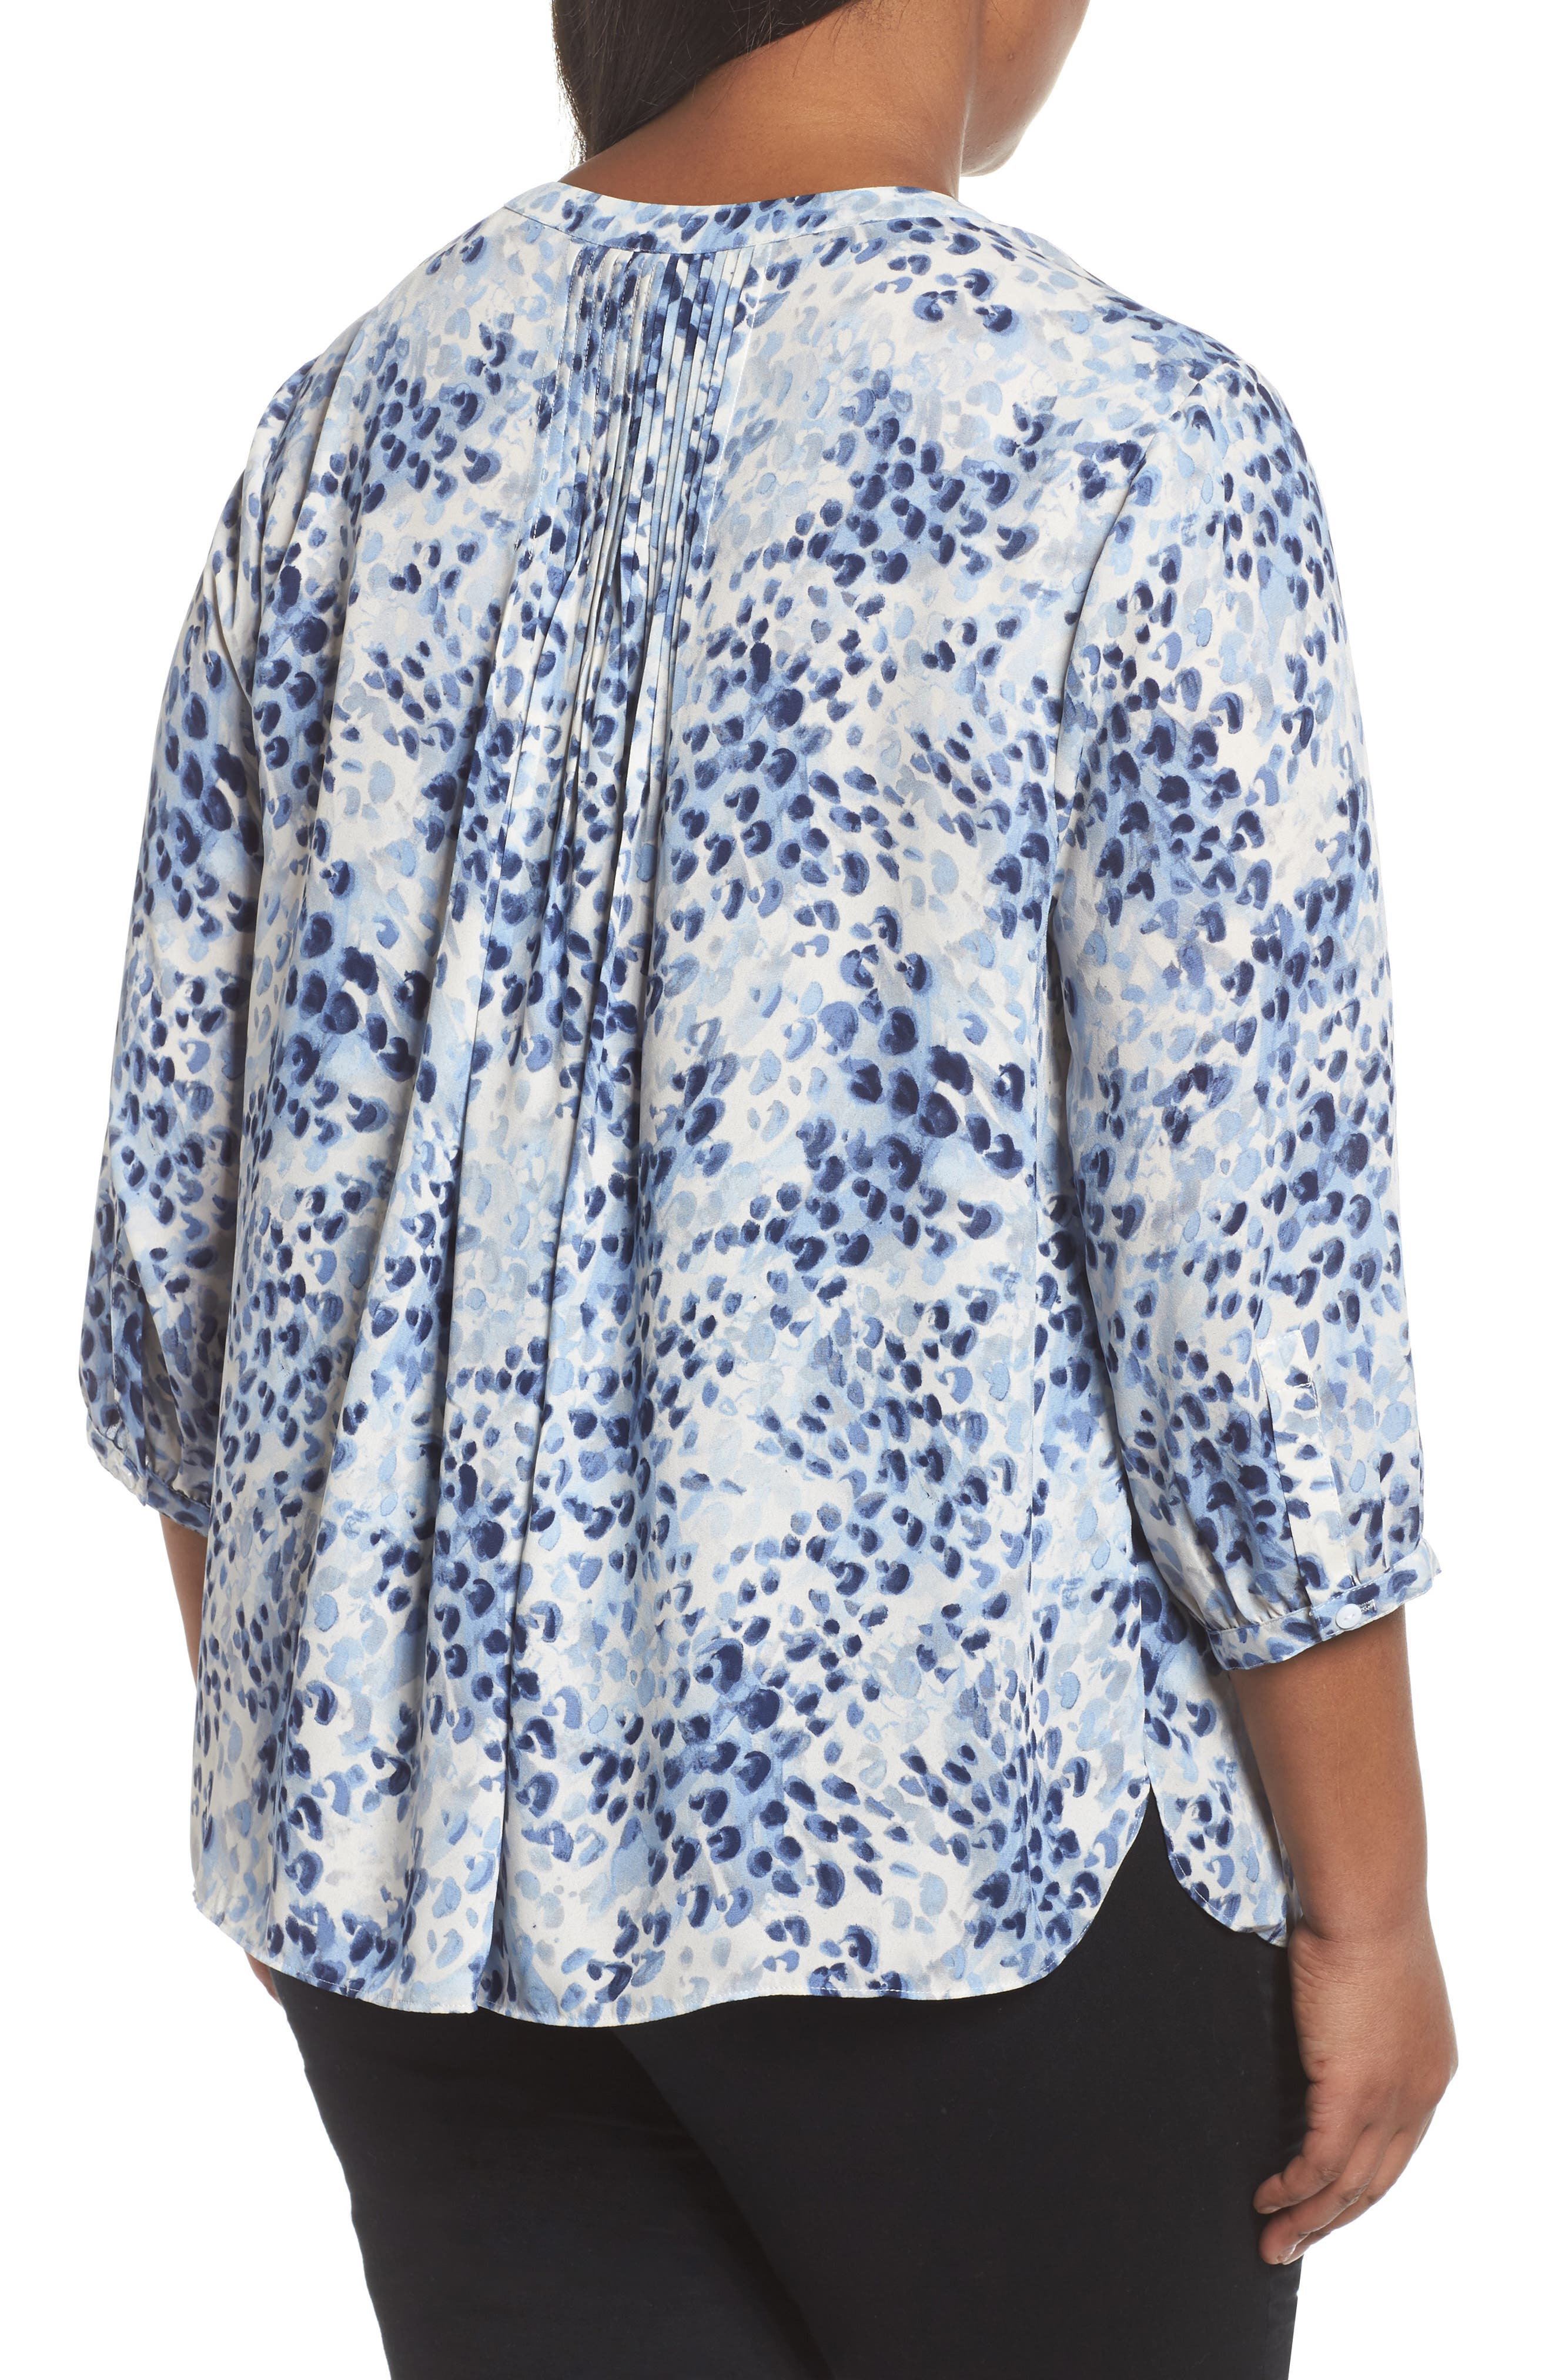 Blouse,                             Alternate thumbnail 2, color,                             Blue